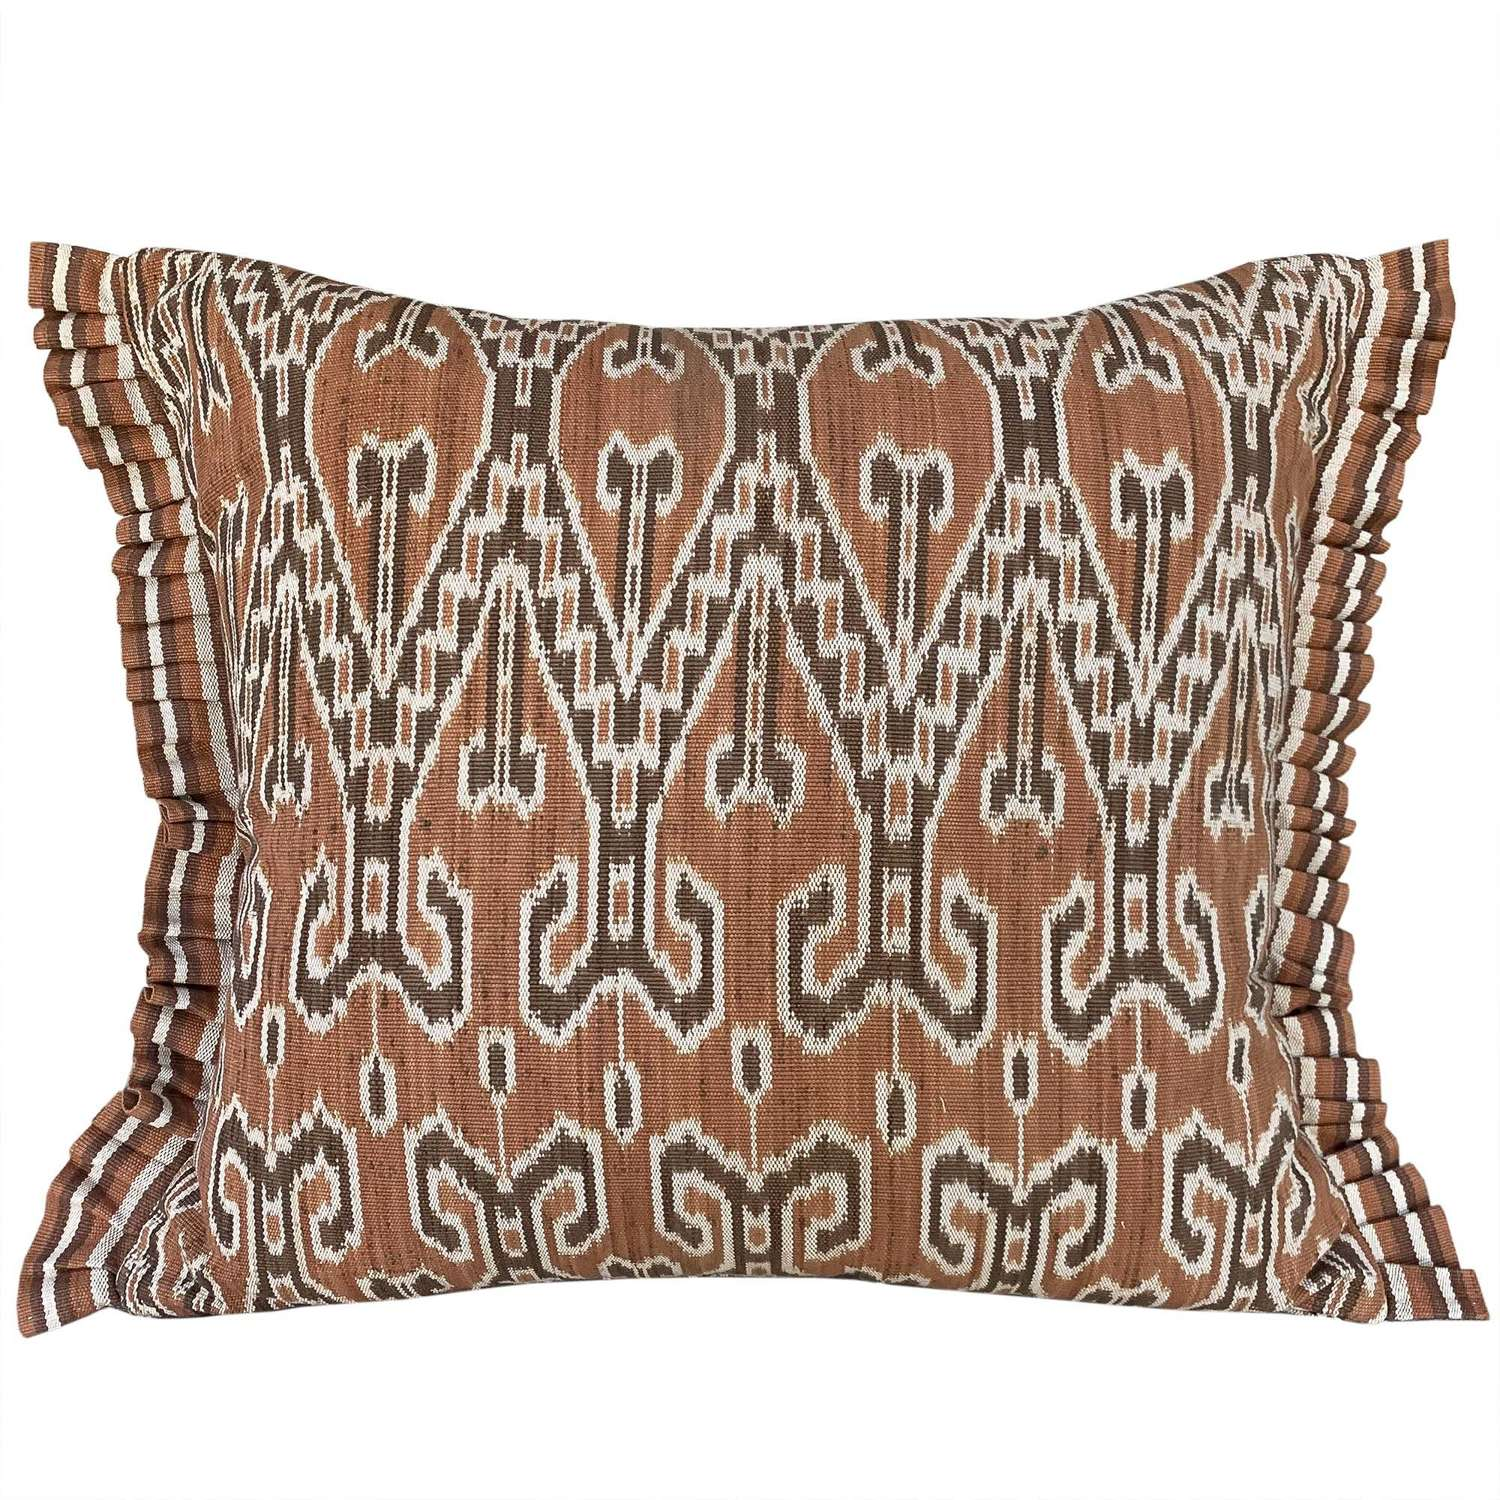 Dayak cushion with side pleats